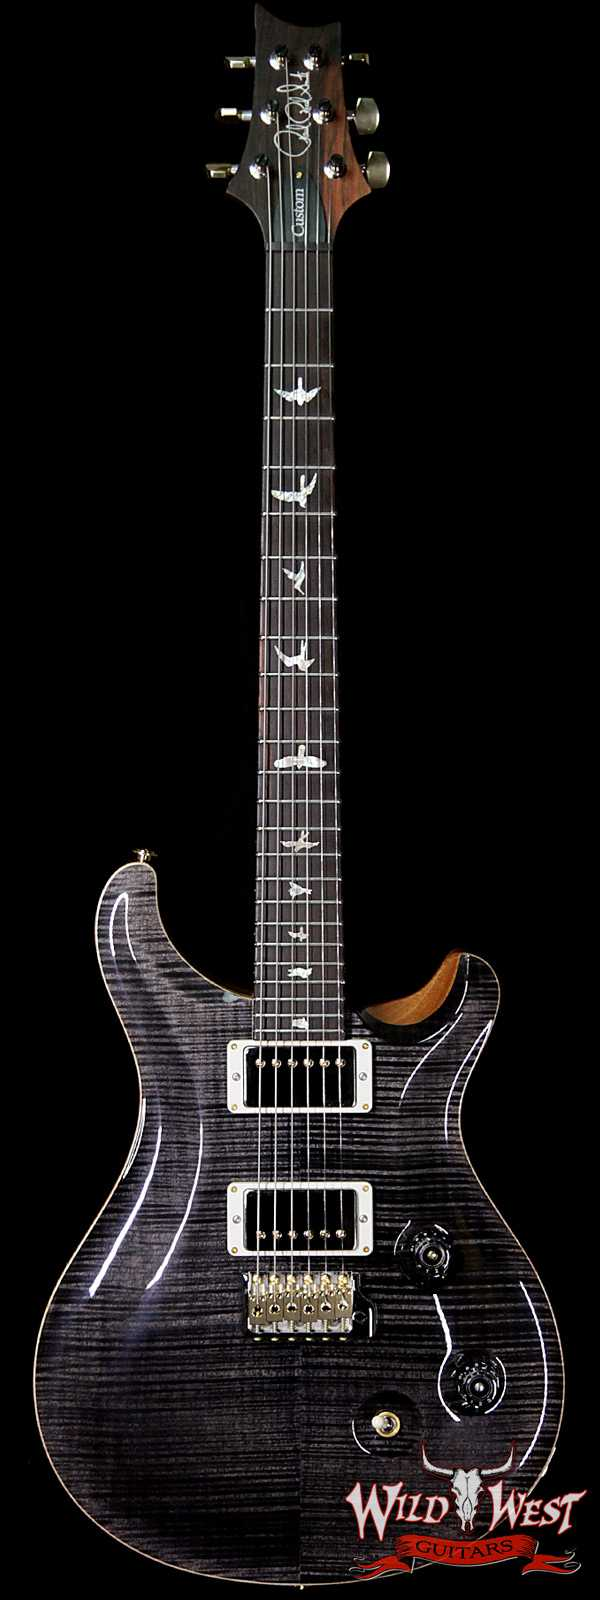 PRS Wood Library 10 Top Custom 24 Fatback Flame Maple Top Brazilian Rosewood Fingerboard Grey Black